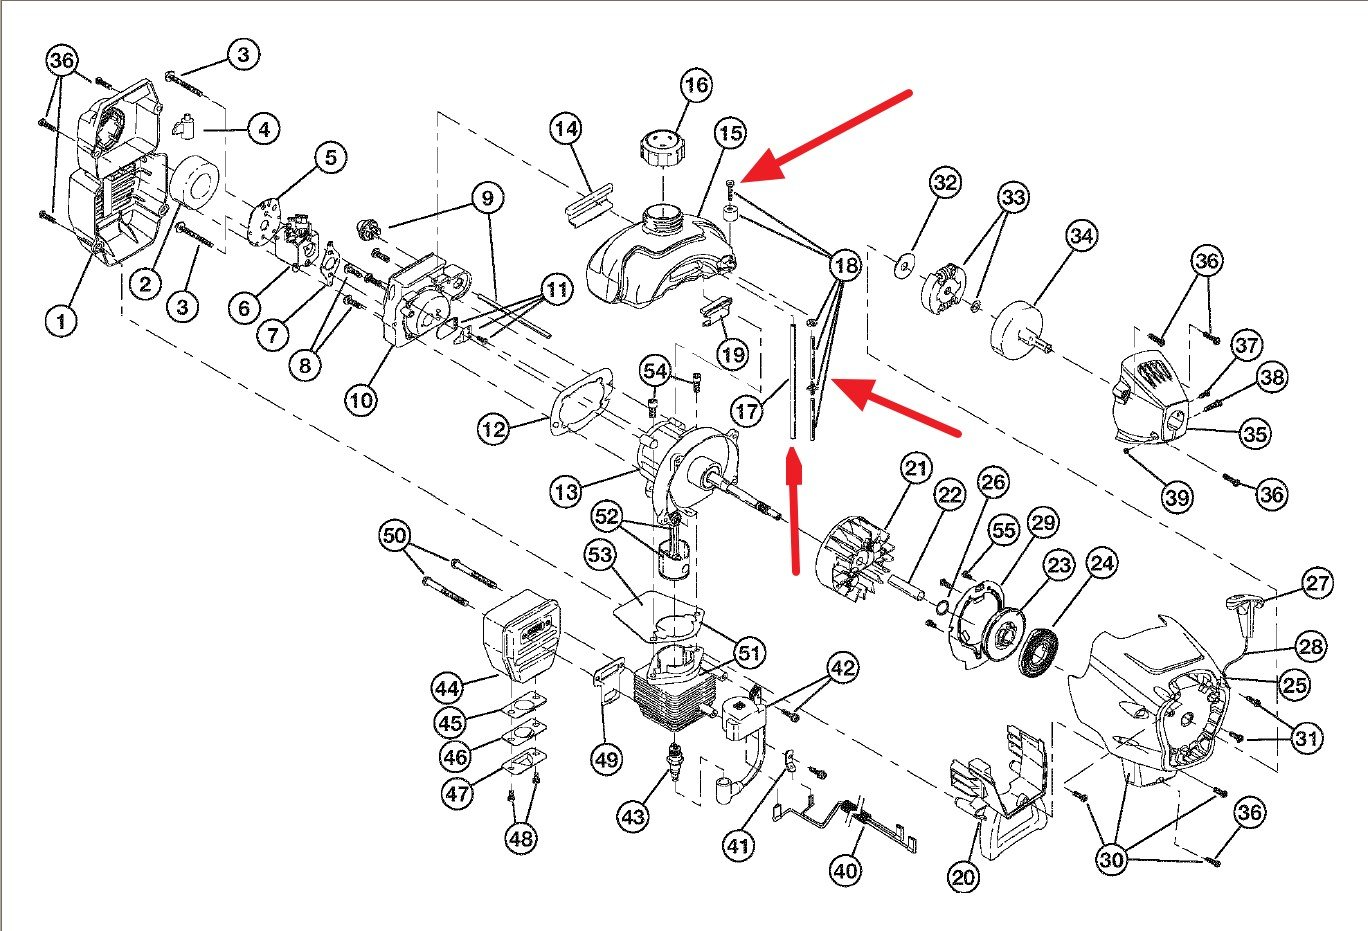 jeep wrangler fuel line diagrams i need a diagram showing how to replace all the fuel lines filter fuel lines diagrams